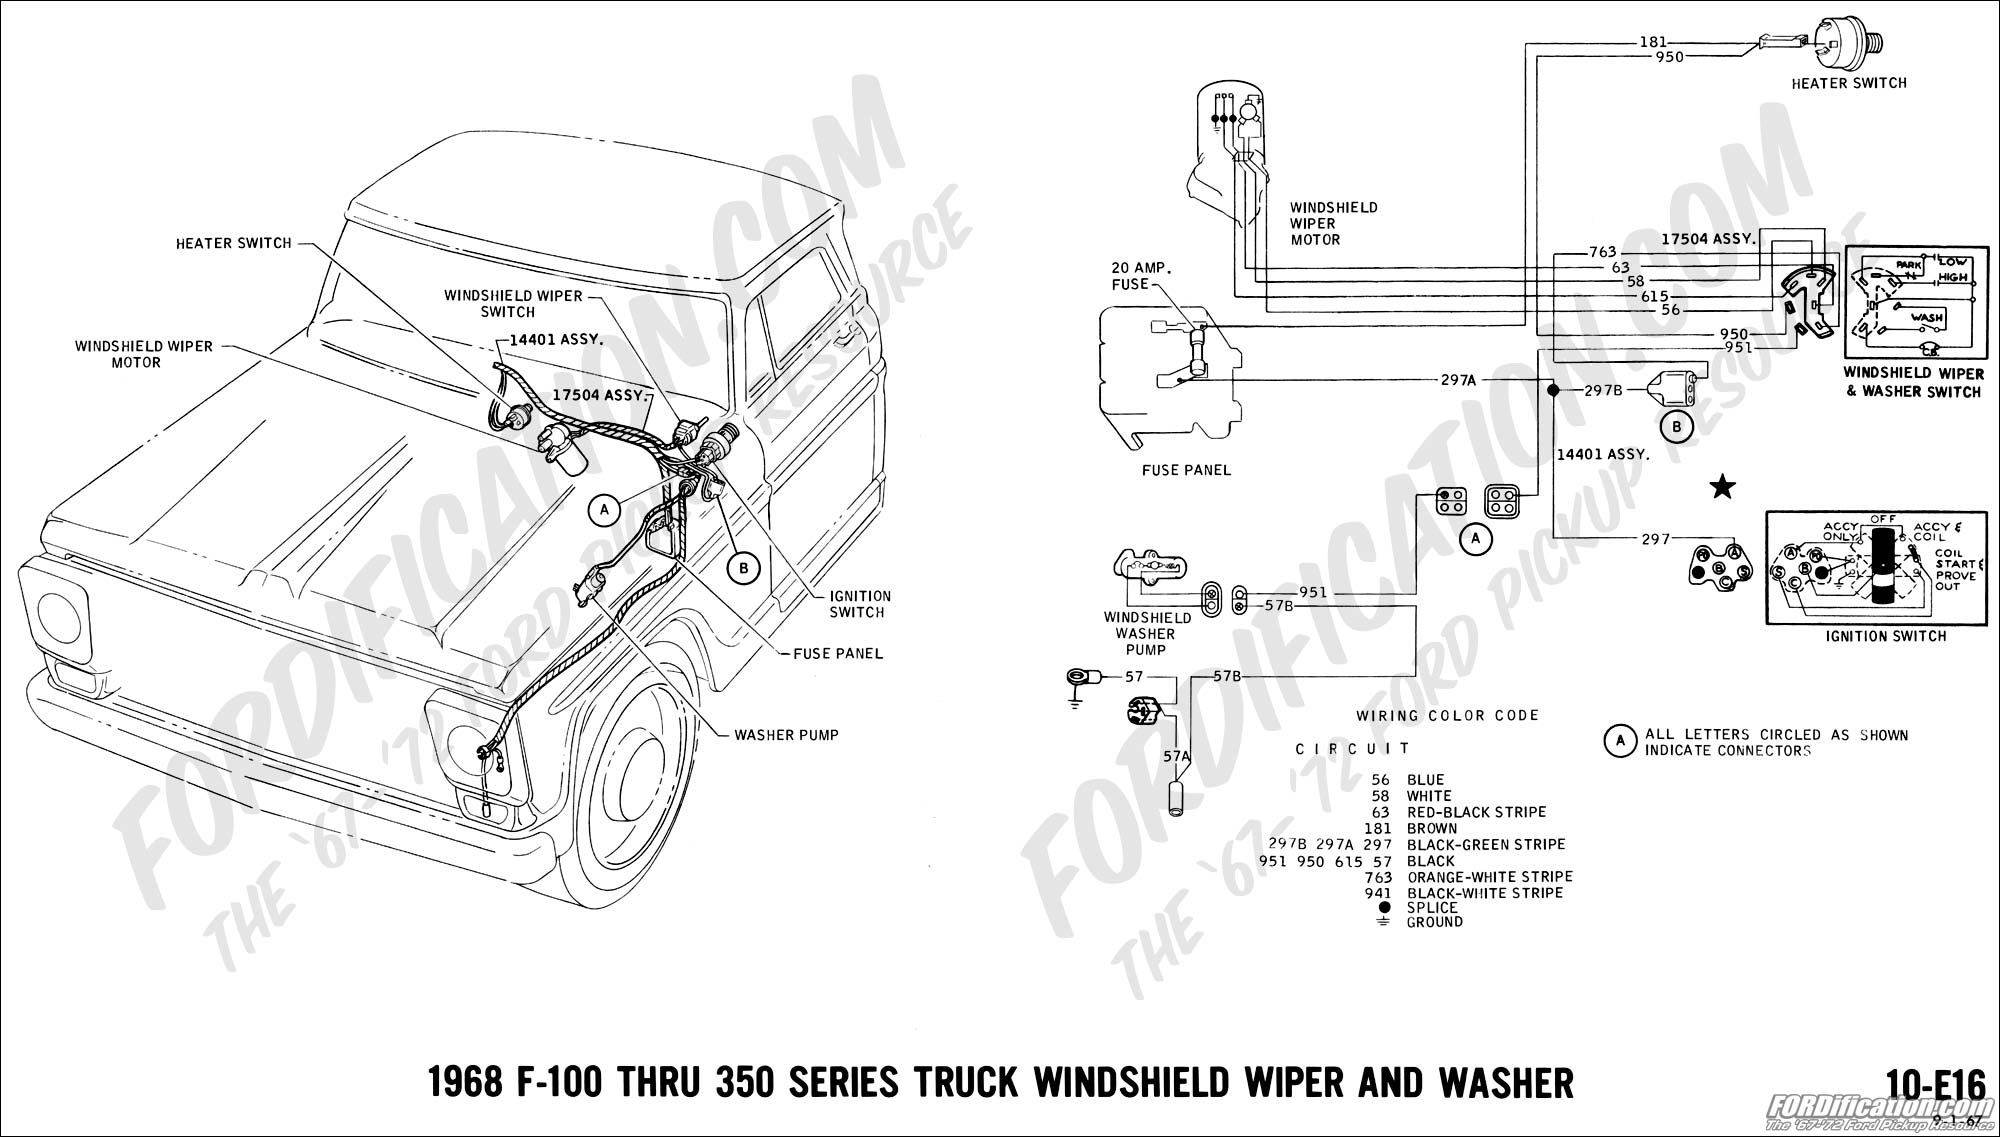 1968 Chevy C10 Horn Wiring Diagram Car Diagrams Explained Chevelle Ford Truck Technical Drawings And Schematics Section H Rh Fordification Com 1966 For Dash 1962